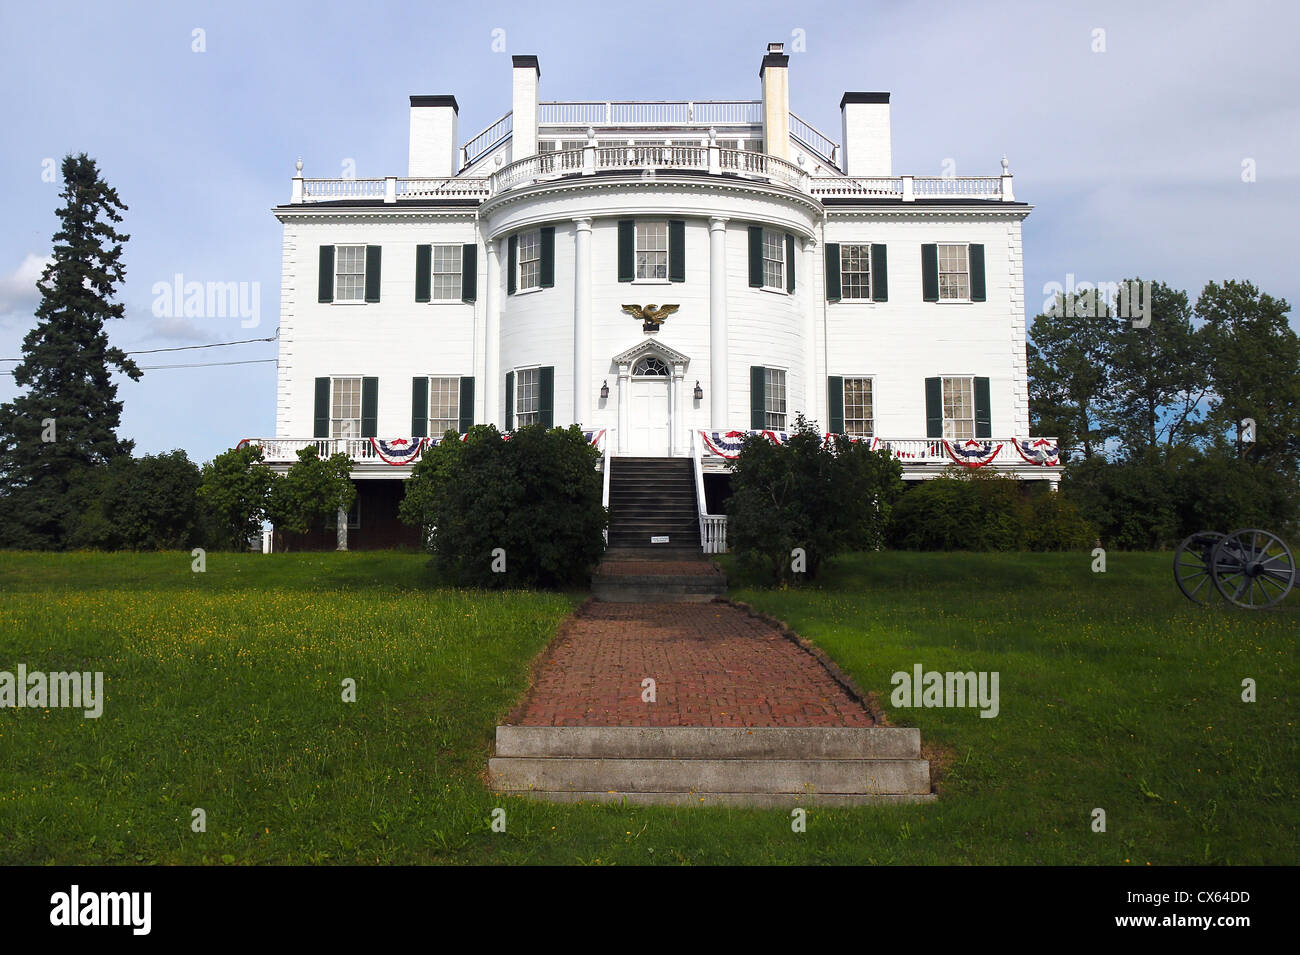 View picture of general henry knox museum montpelier thomaston - Montpelier The Mansion Built For General Henry Knox In The 1790 S In Thomaston